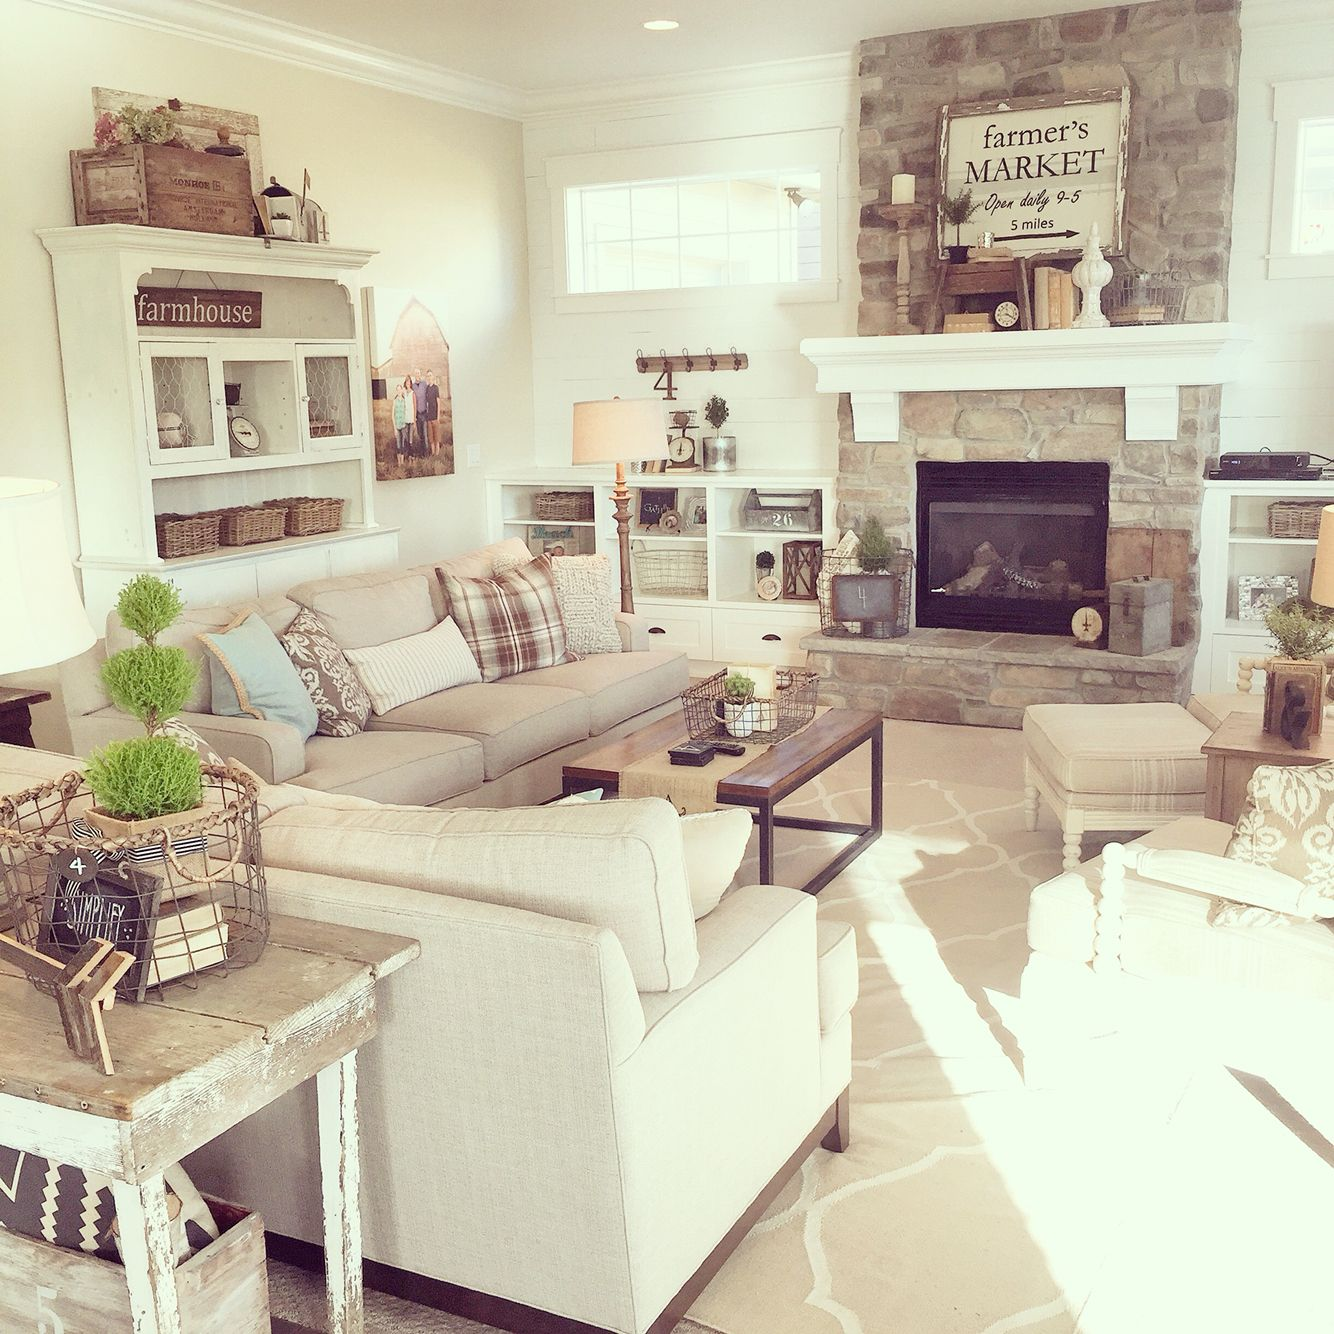 Images Of Modern Farmhouse Interiors A Neutral Palette Lots Of Texture Modern Farmhouse